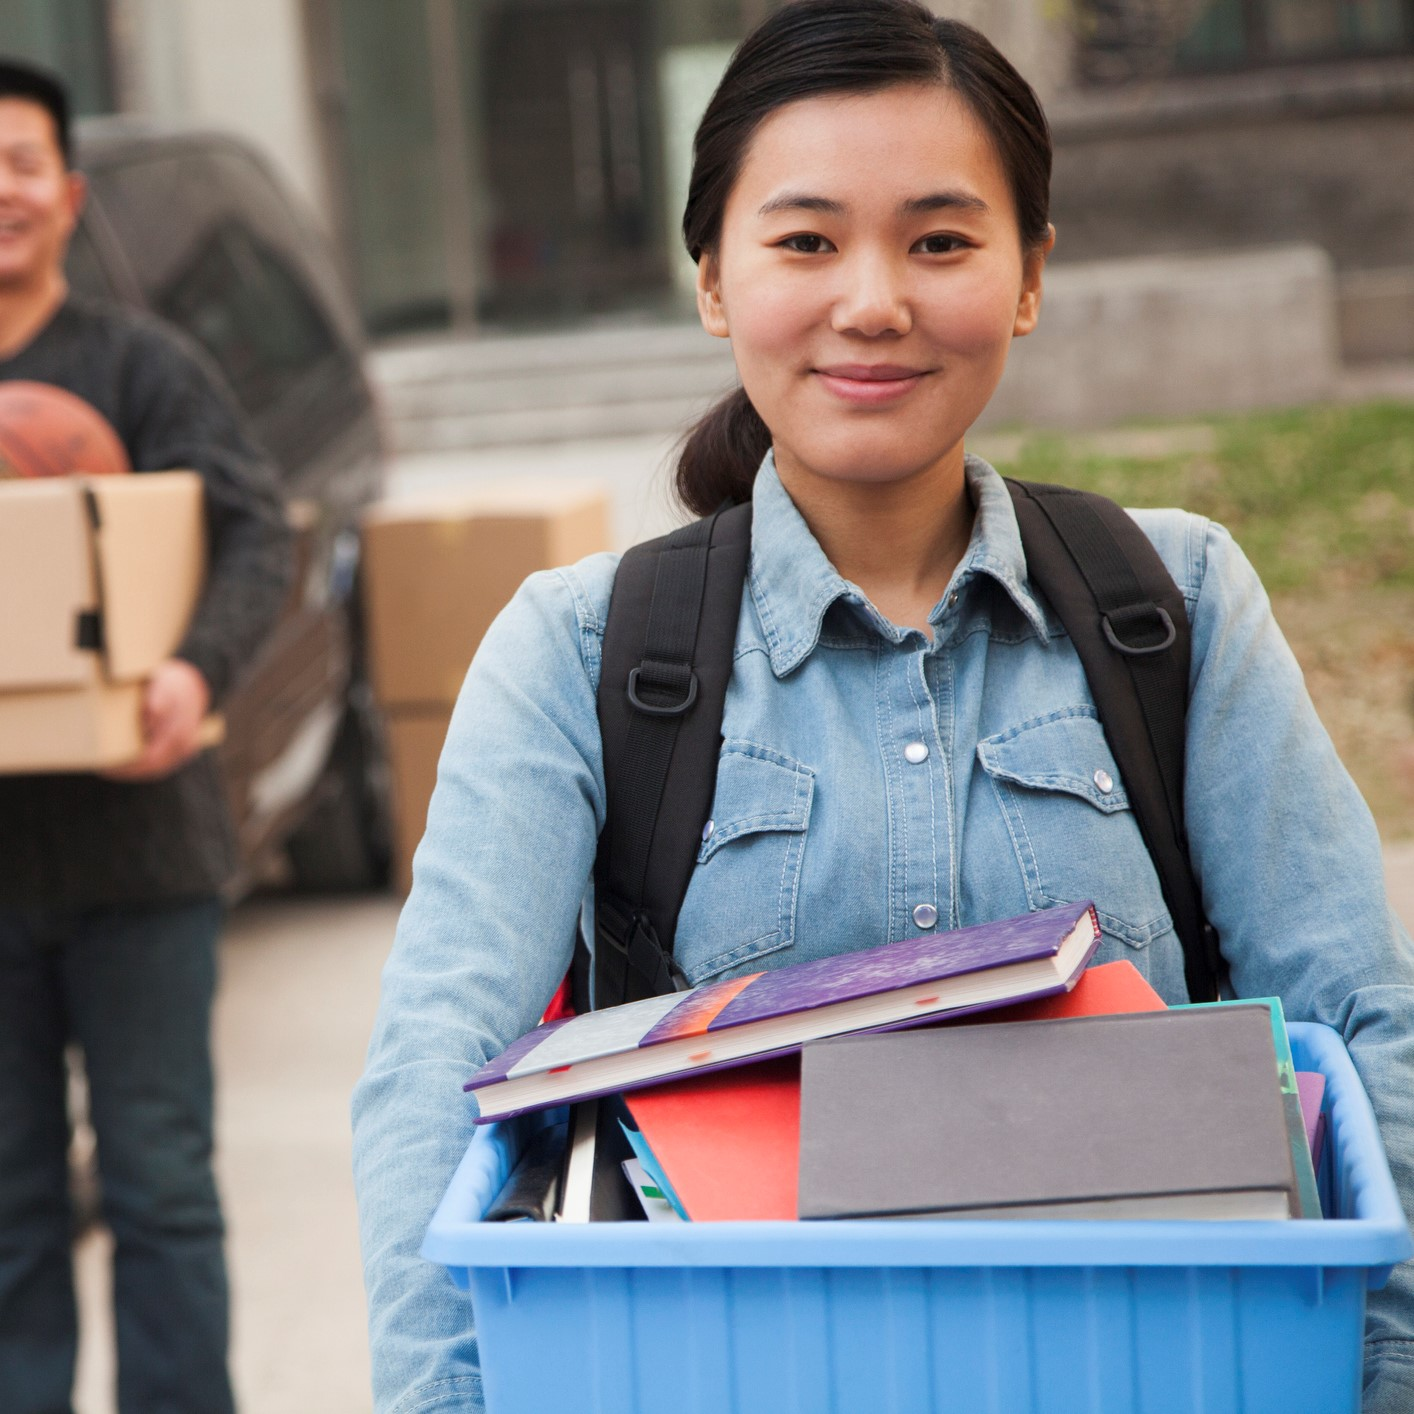 Student in front of a dorm, moving in and carrying a box of books